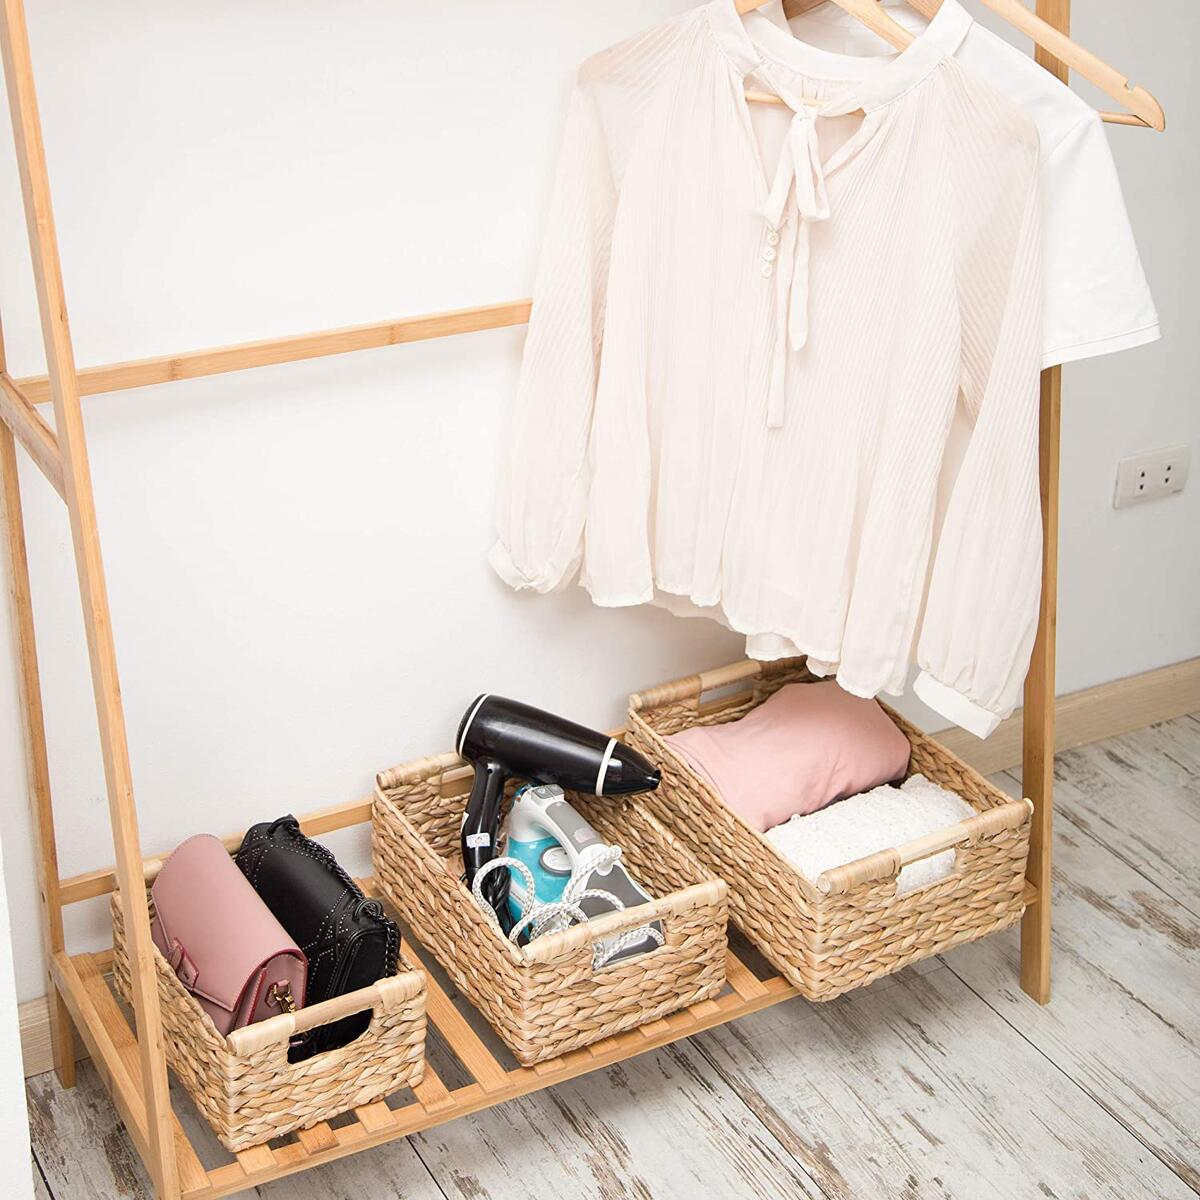 Small Wicker Baskets for Organizing Bathroom, Hyacinth Baskets for Storage, Wicker Storage Basket with Handle, Decorative Baskets Wicker Small 11 x 7.9 x 4.3 inches